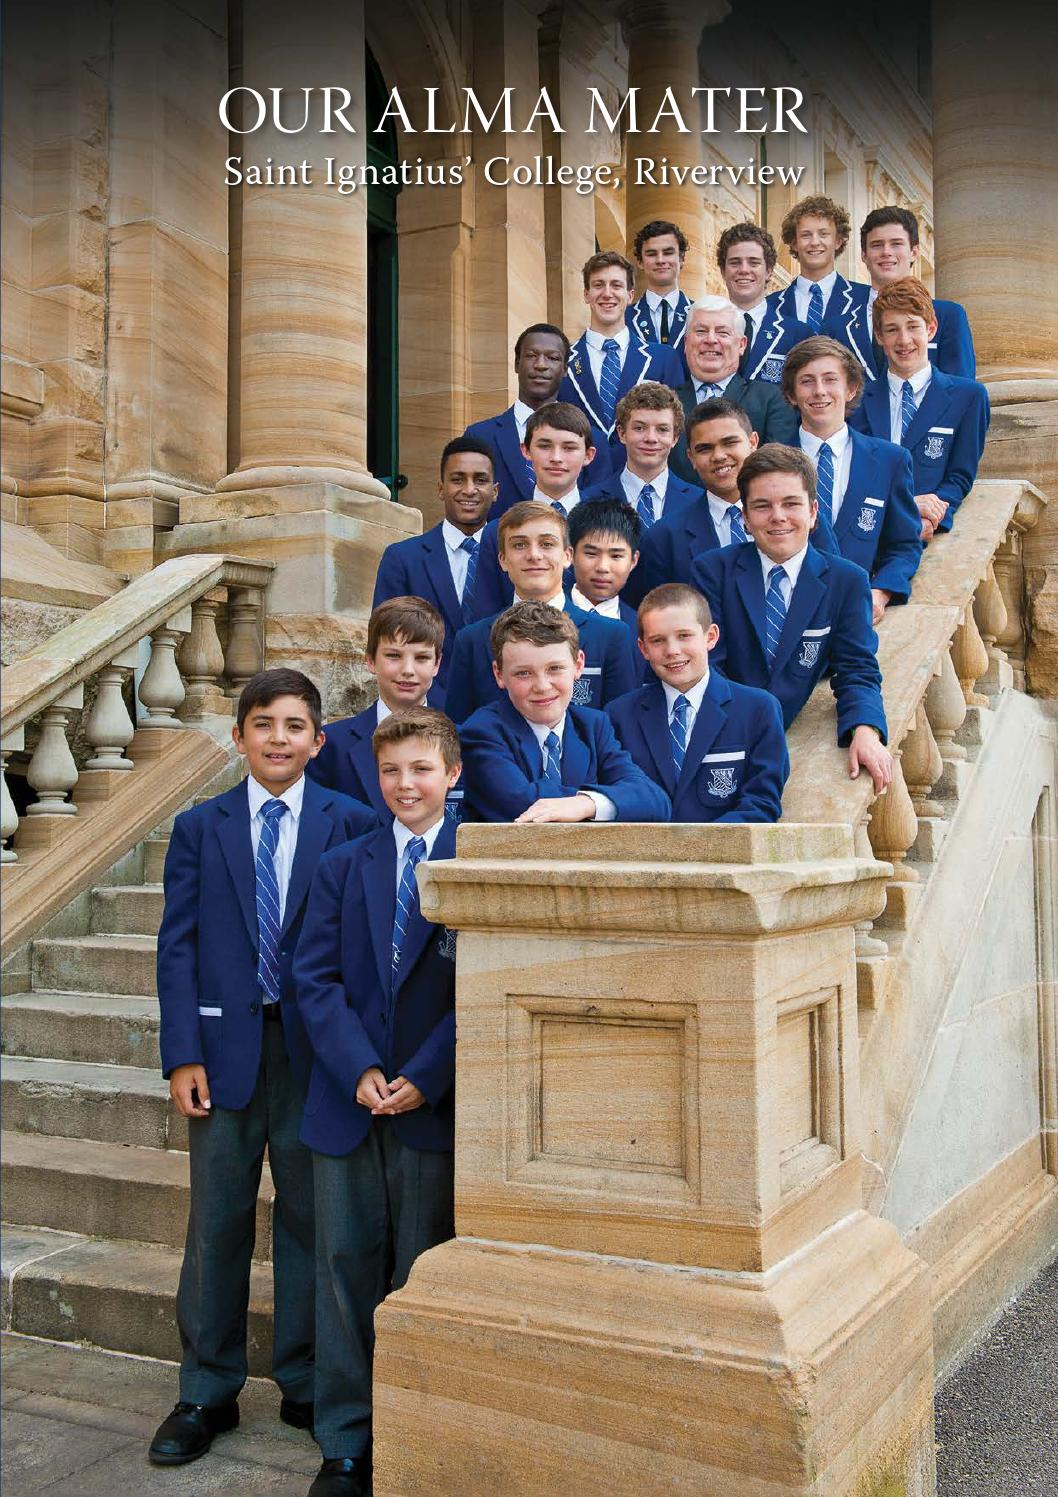 Our Alma Mater 2012 by Saint Ignatius' College, Riverview